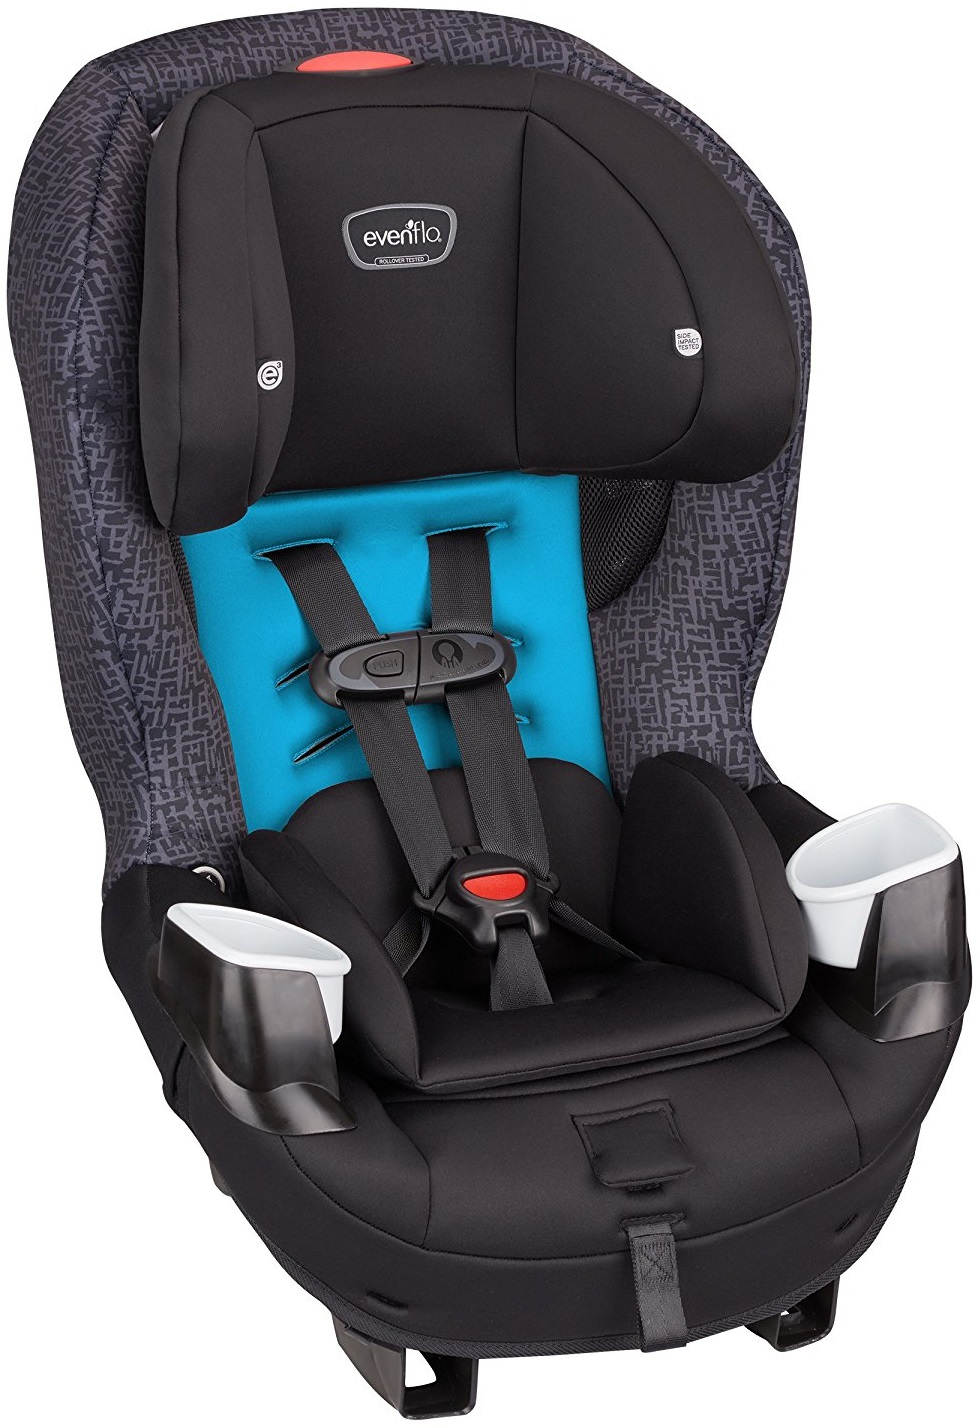 Grand Evenflo Stratos Vs Triumph Lx Any Reason To Choose Newer Evenflostratos Evenflo Car Seats Comparison Evenflo Car Seats Amazon Evenflo Car Seats Walmart baby Evenflo Car Seats